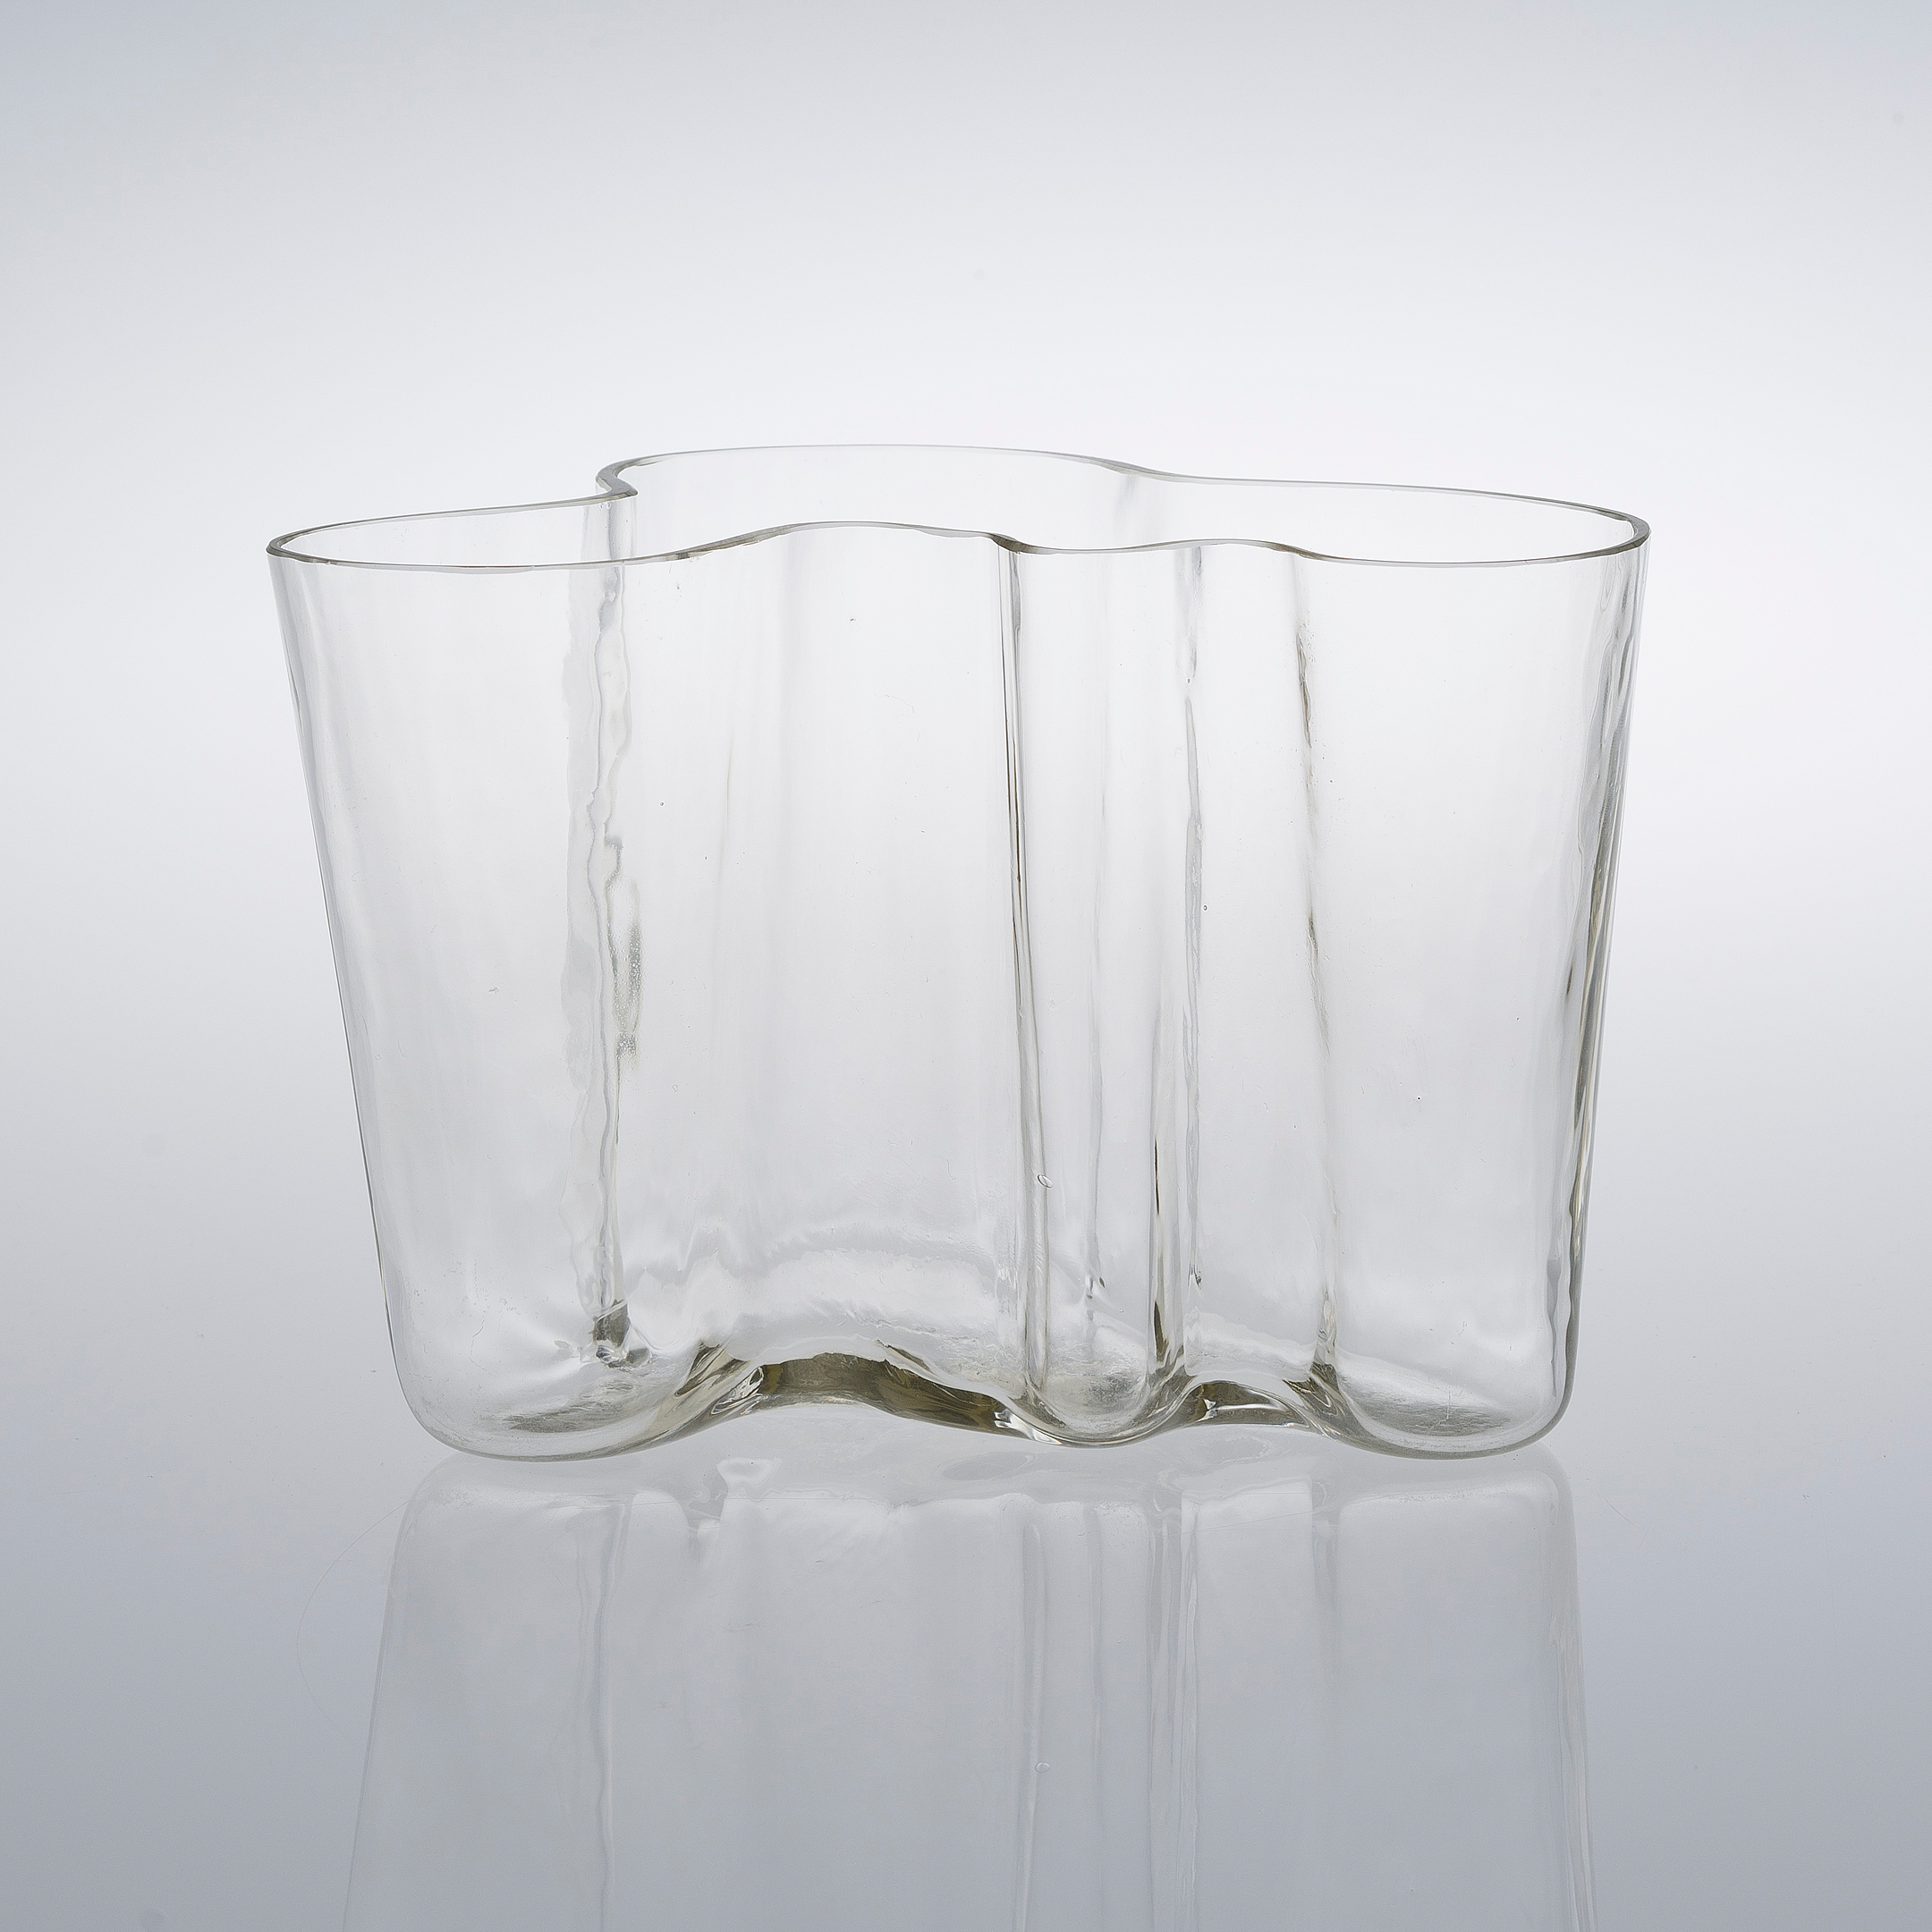 alvar aalto vase fabulous alvar aalto vase with alvar aalto vase interesting iittala on sale. Black Bedroom Furniture Sets. Home Design Ideas